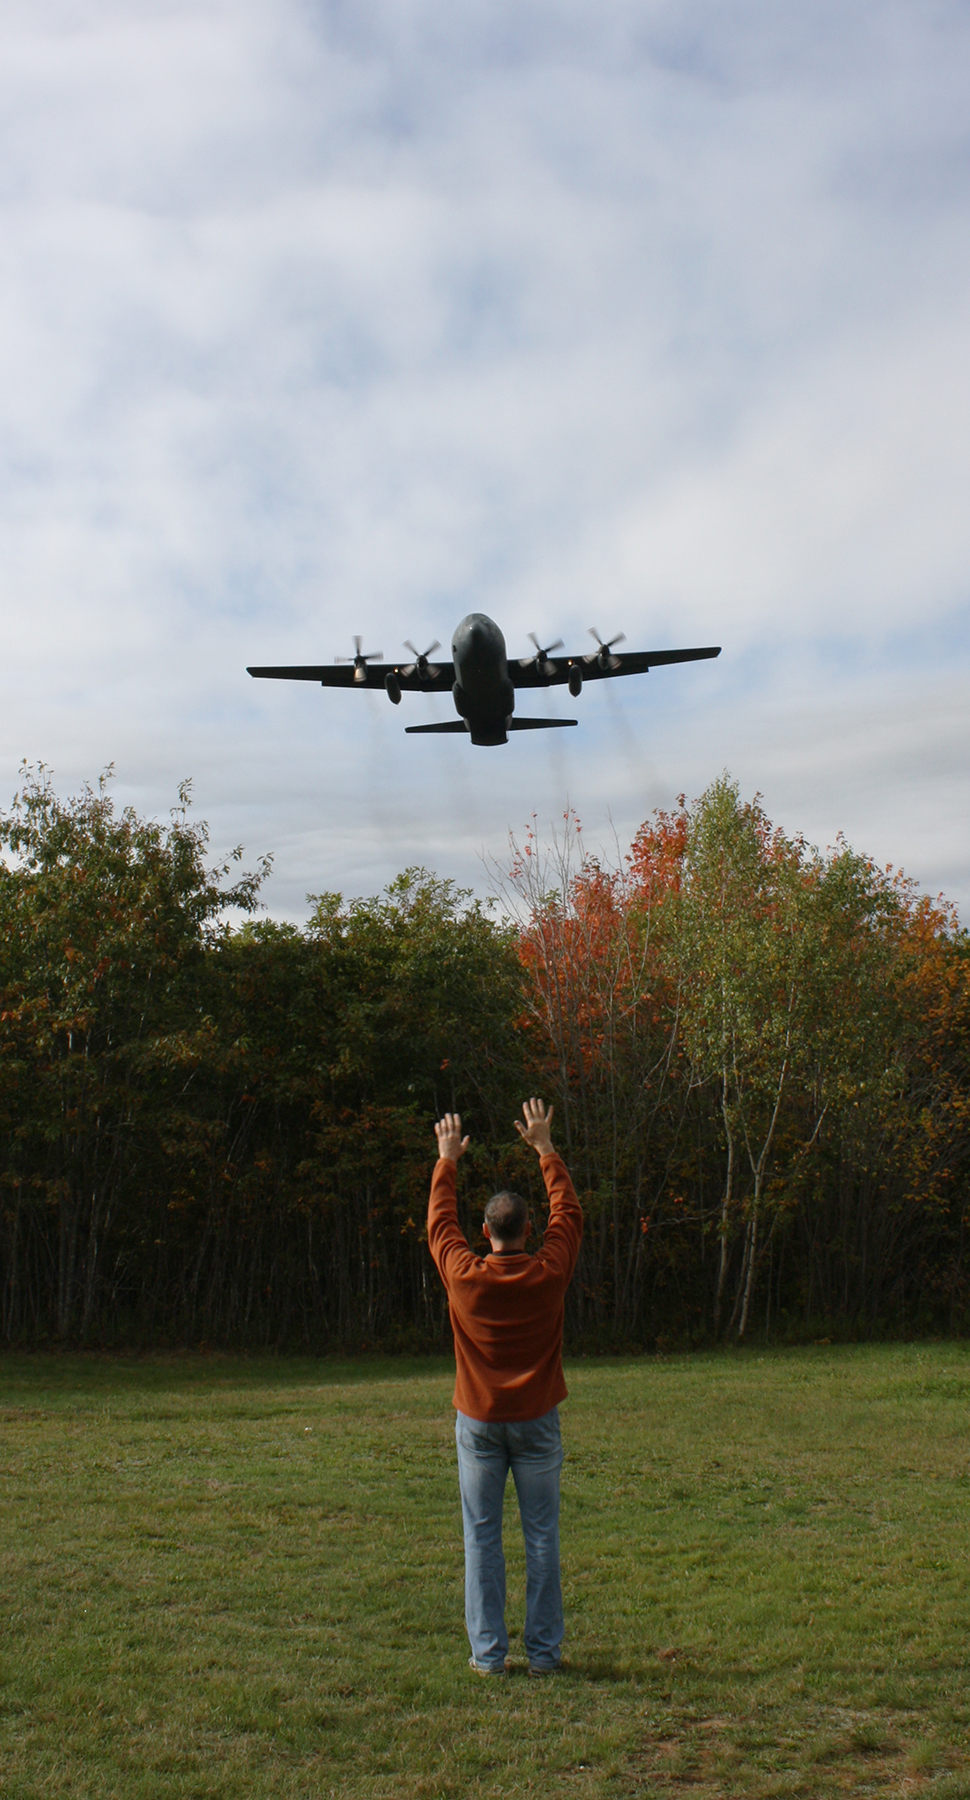 As the only mobile victim after a simulated two-aircraft crash, Master Corporal Wayne Wilson signals to a 413 Transport and Rescue Squadron CC-130 Hercules on October 5, 2018, during the squadron's week-long search and rescue exercise. PHOTO: Sara White